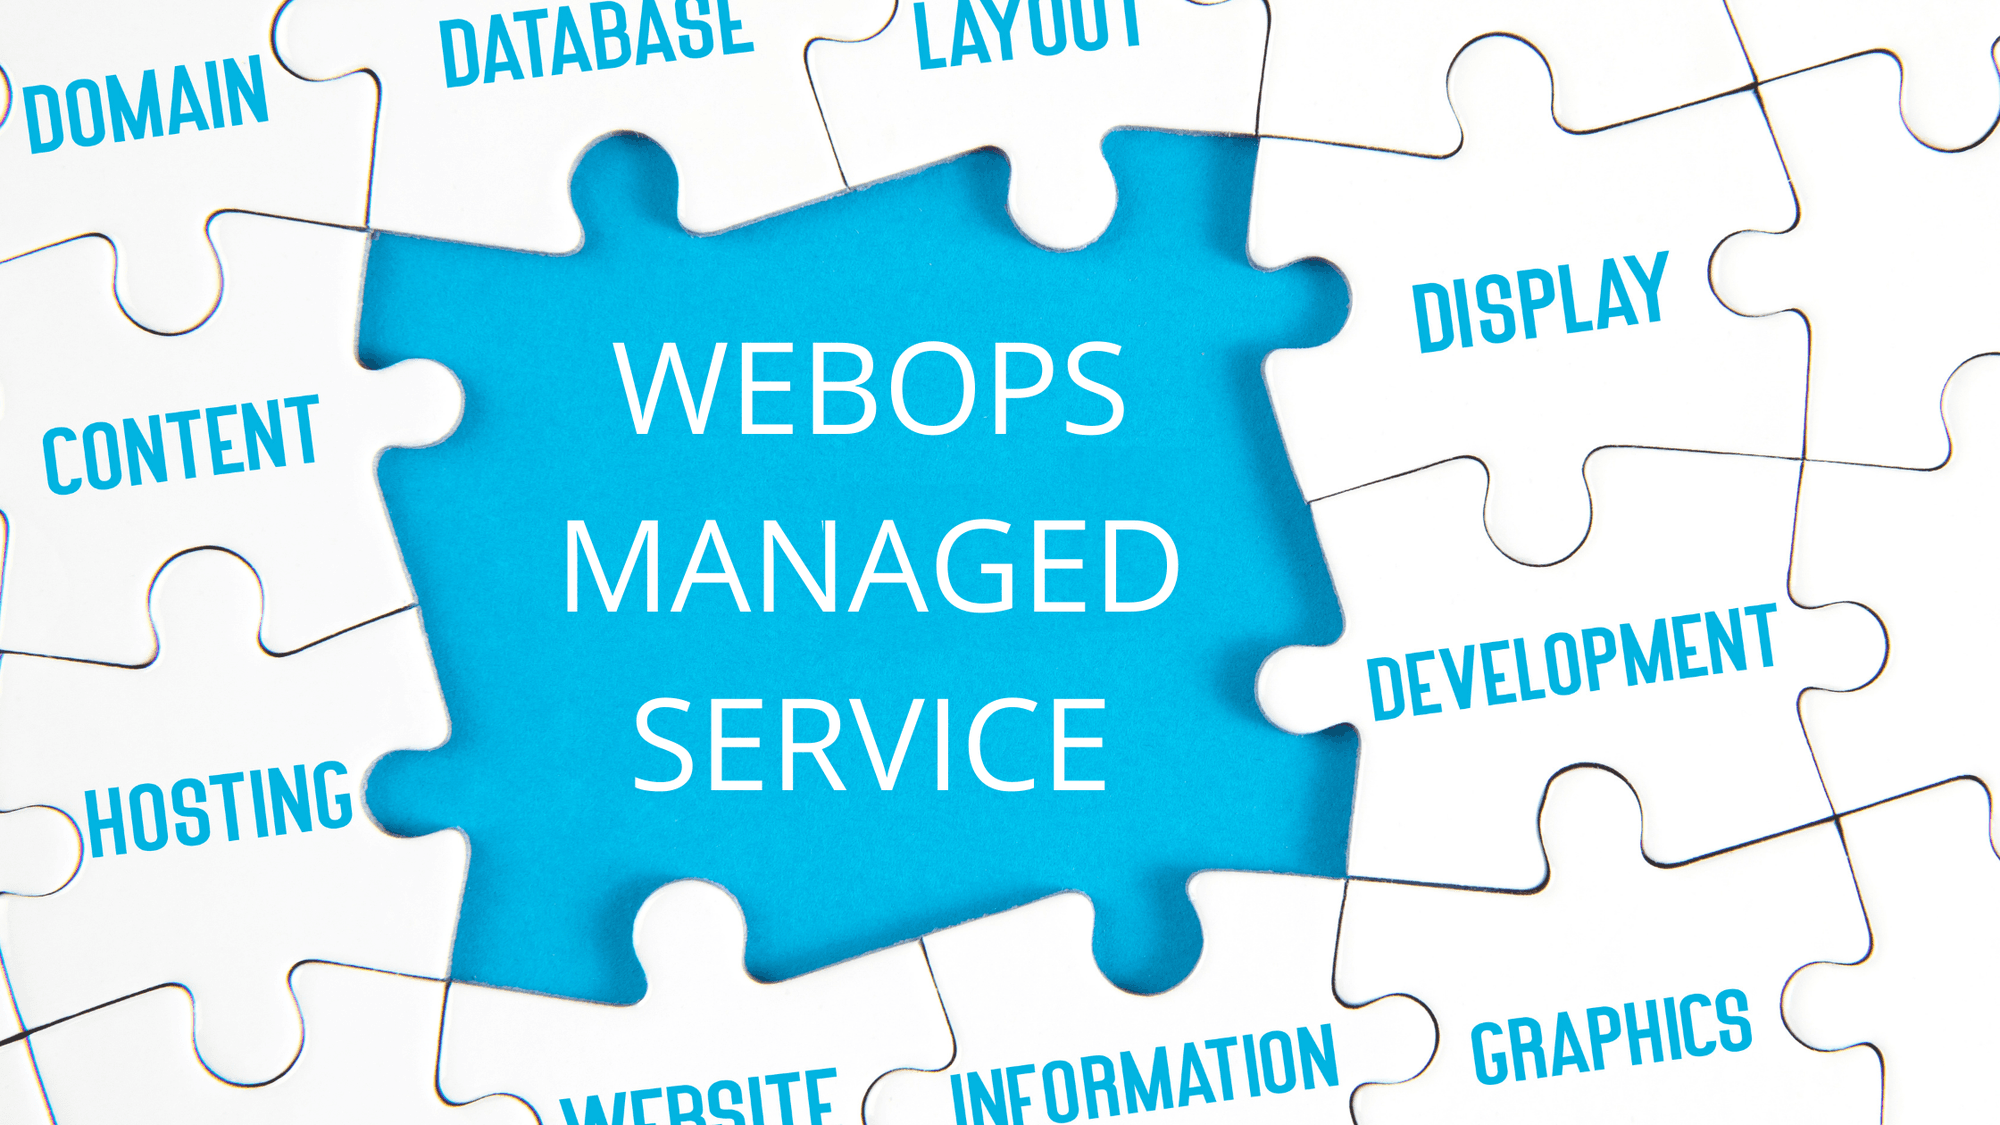 WebOps - Website Management as a Service: Bridging the Gap Between IT and Marketing